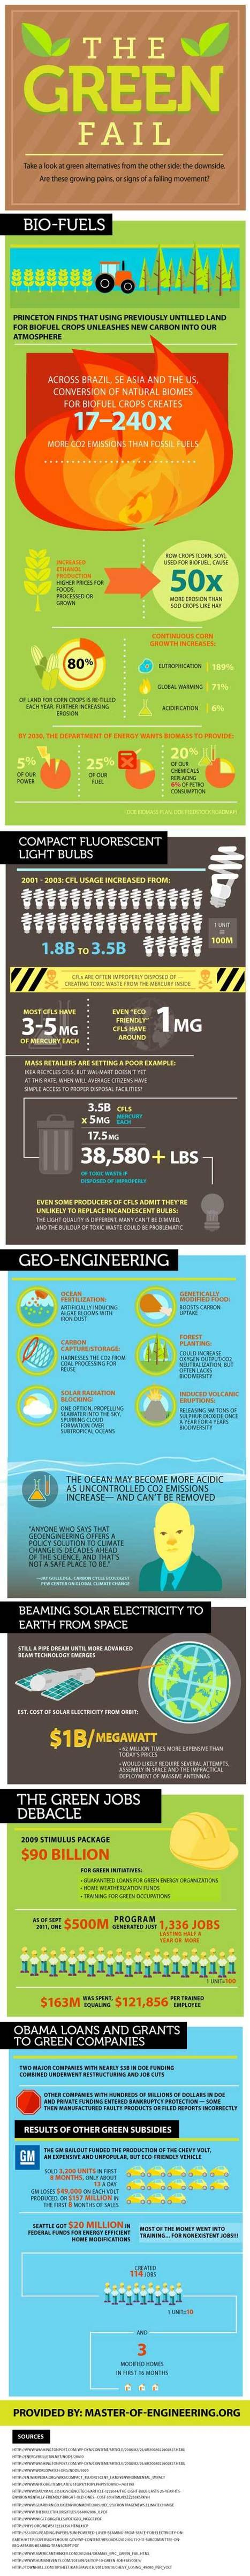 The Green Fail Infographic | Energy Hack | Sustain Our Earth | Scoop.it